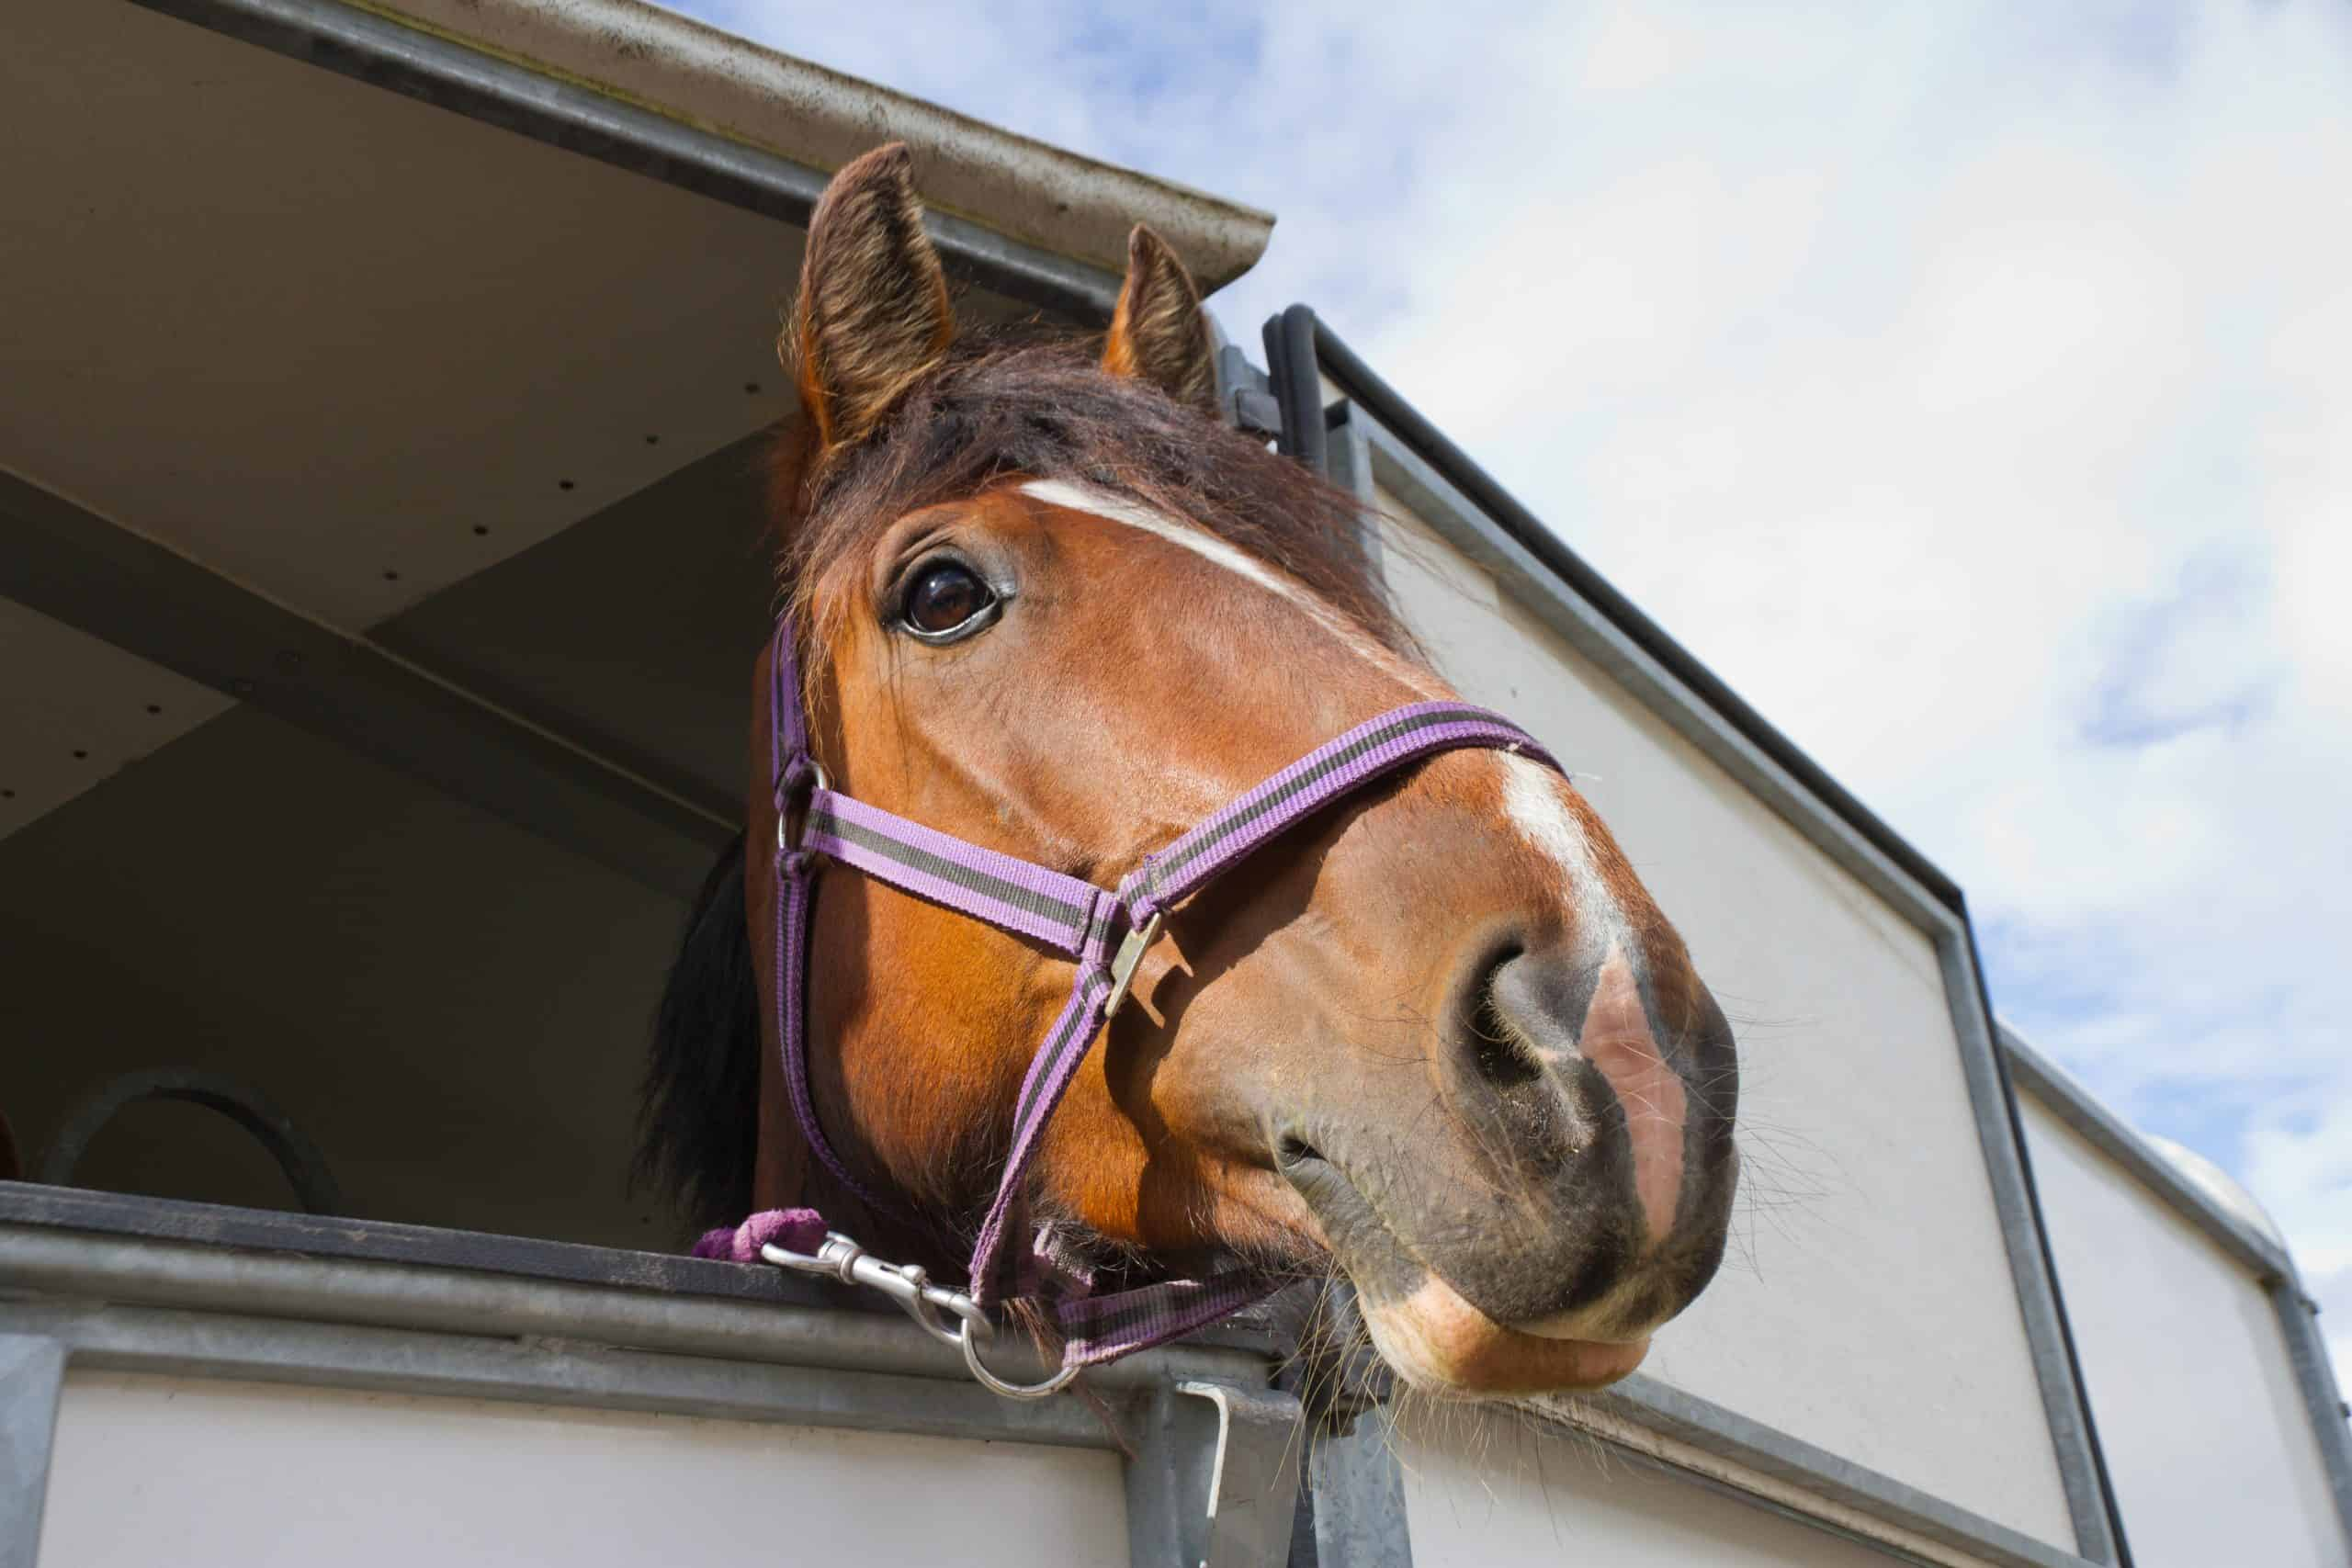 Close up of Bay horses head as it looks out from horse box which is transporting it to equine event.